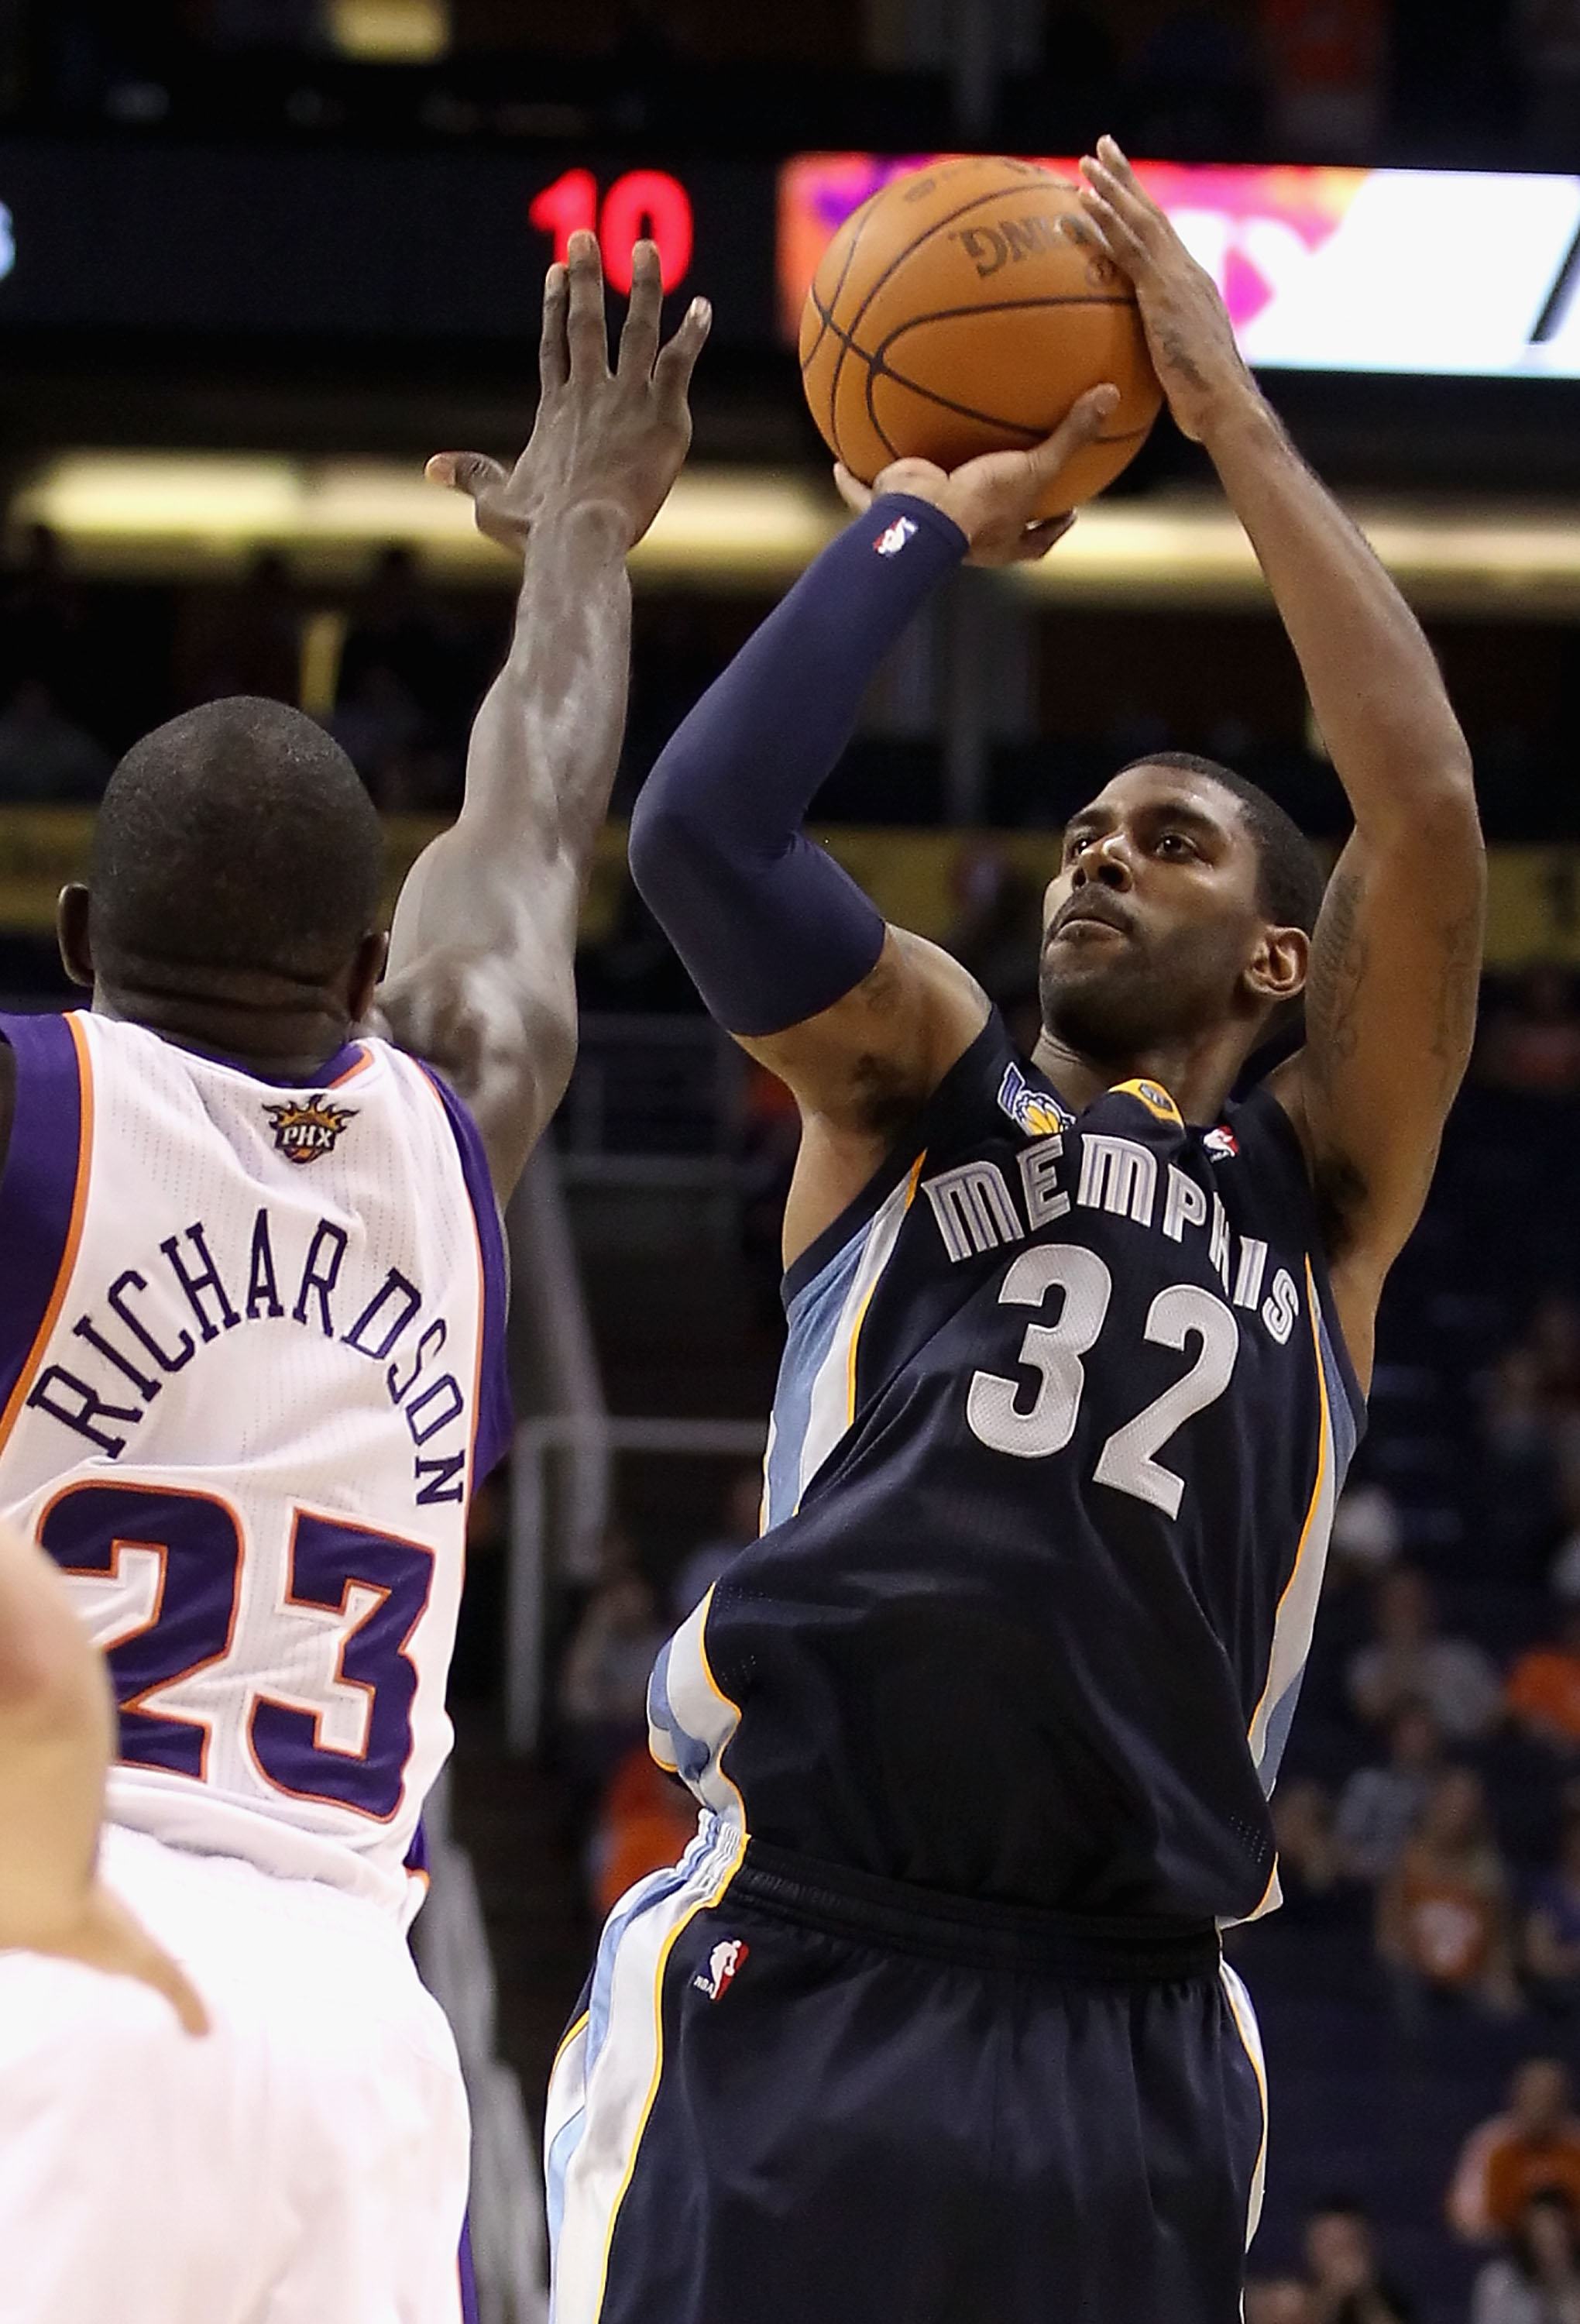 PHOENIX - NOVEMBER 05:  O.J. Mayo #32 of the Memphis Grizzlies puts up a shot during the NBA game against the Phoenix Suns at US Airways Center on November 5, 2010 in Phoenix, Arizona. NOTE TO USER: User expressly acknowledges and agrees that, by download